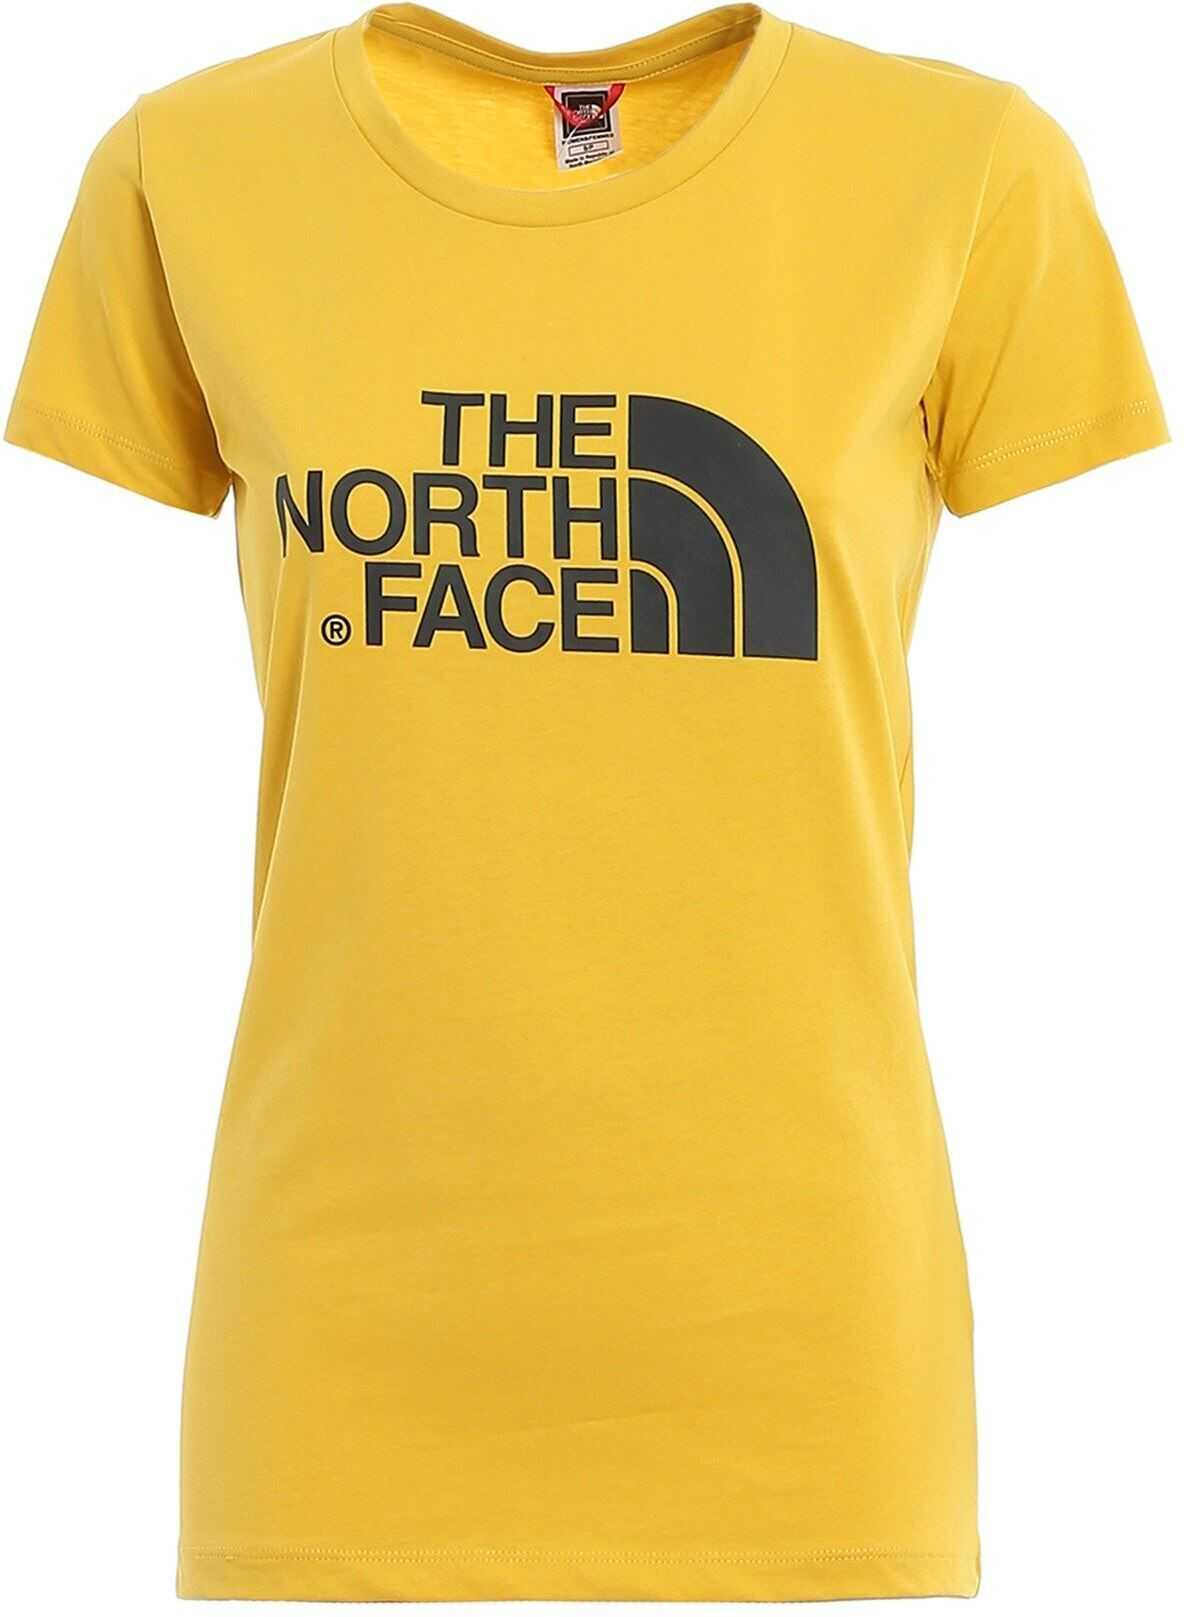 The North Face T-Shirt In Yellow With Logo Print Yellow